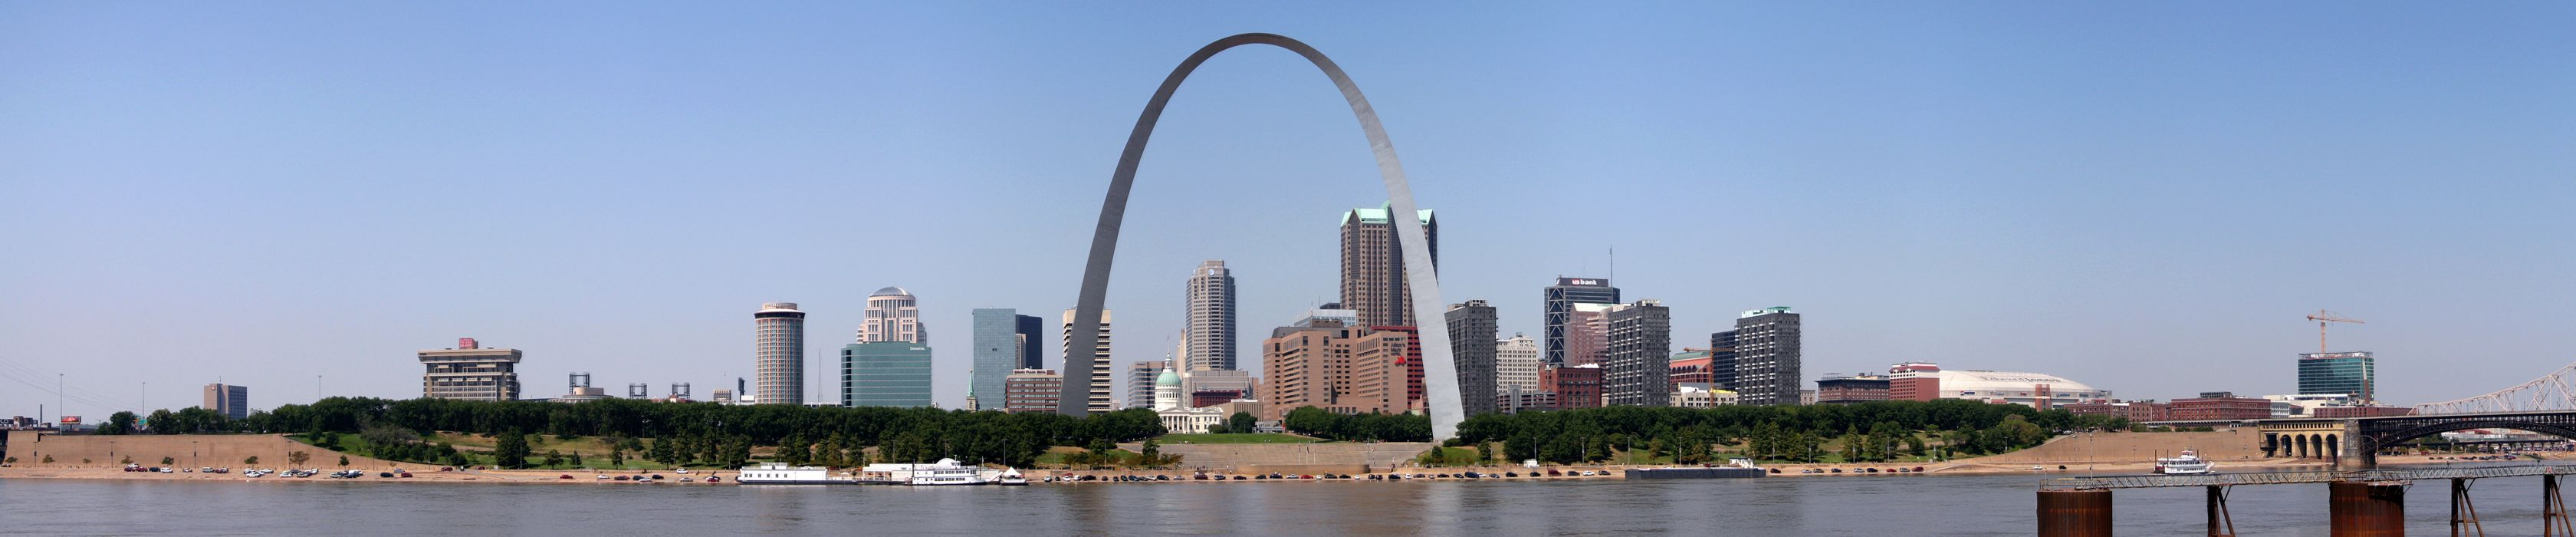 St Louis Gateway Arch Missouri wallpaper